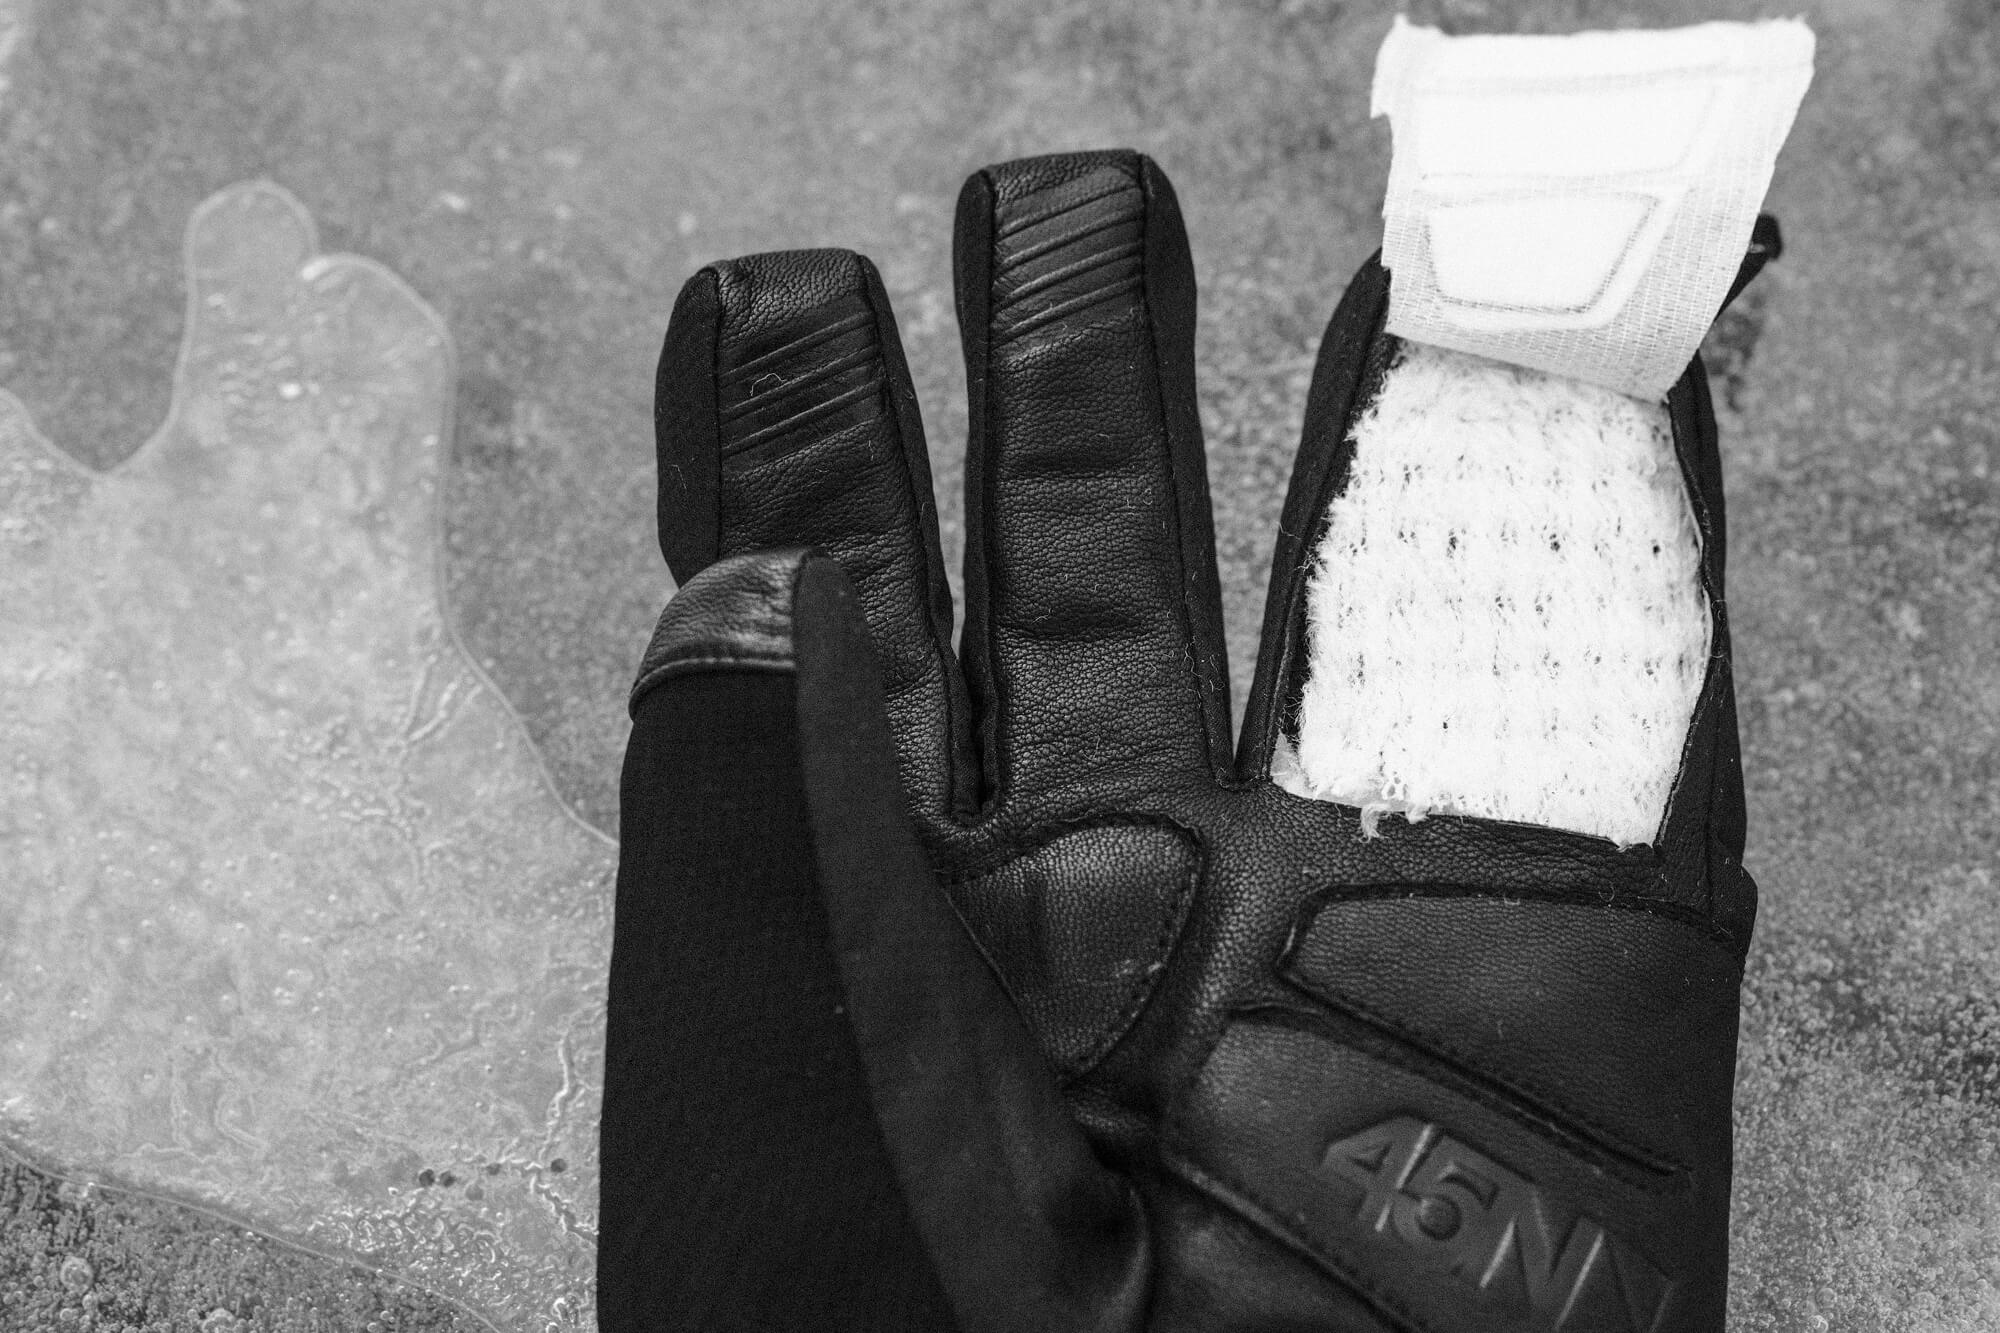 A 45NRTH Sturmfist 4 glove with a cross-section of a finger removed to show Polartec Alpha insulation